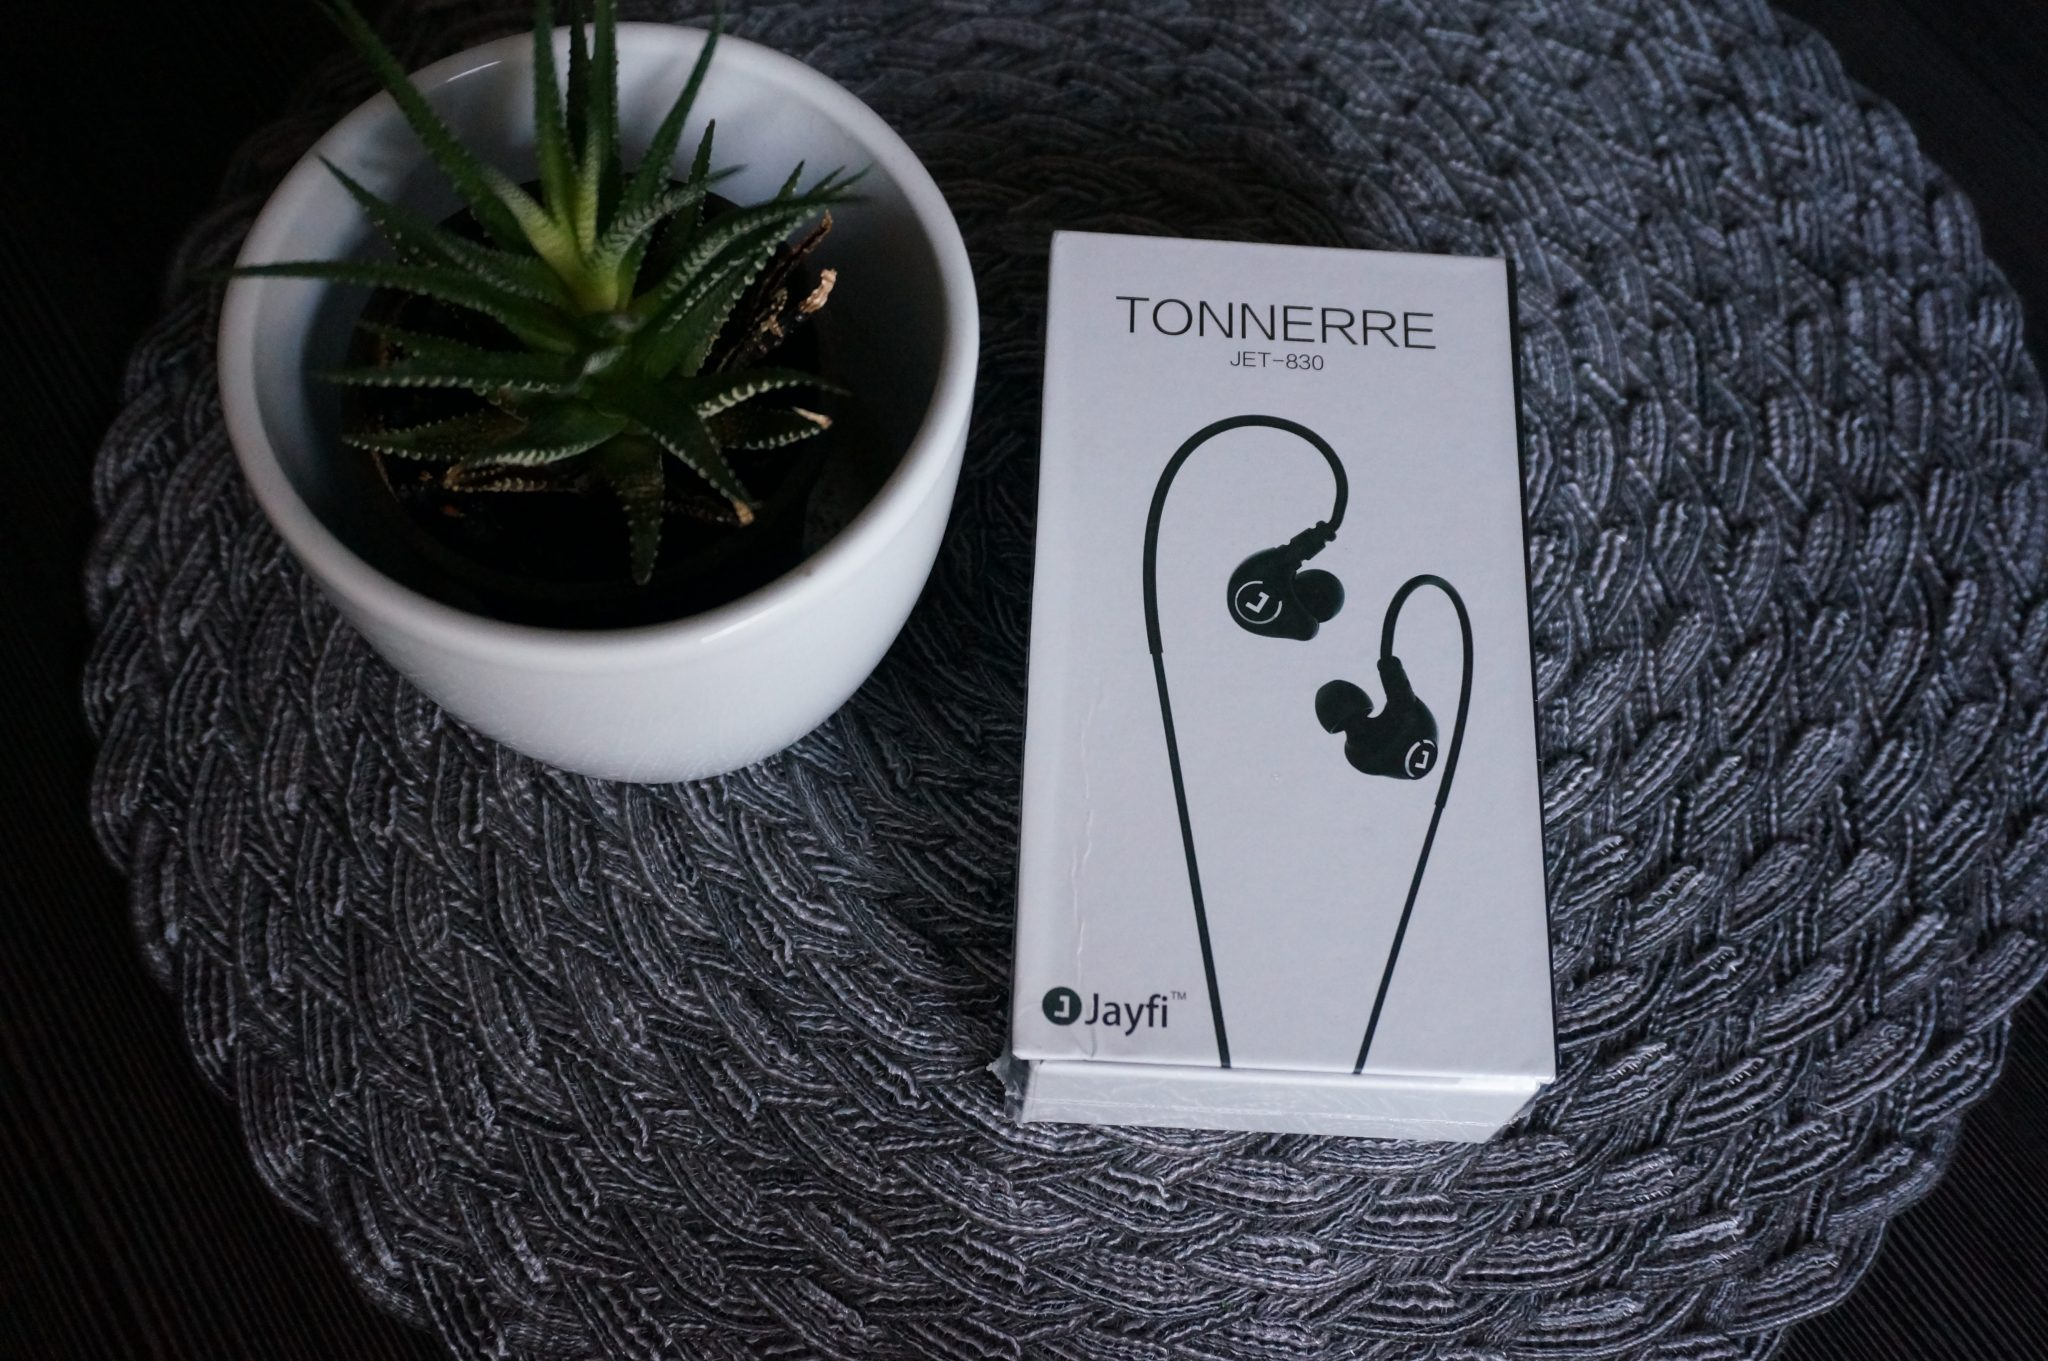 Jayfi Tonnere Jet-830 Test: In Ears für 20 EUR